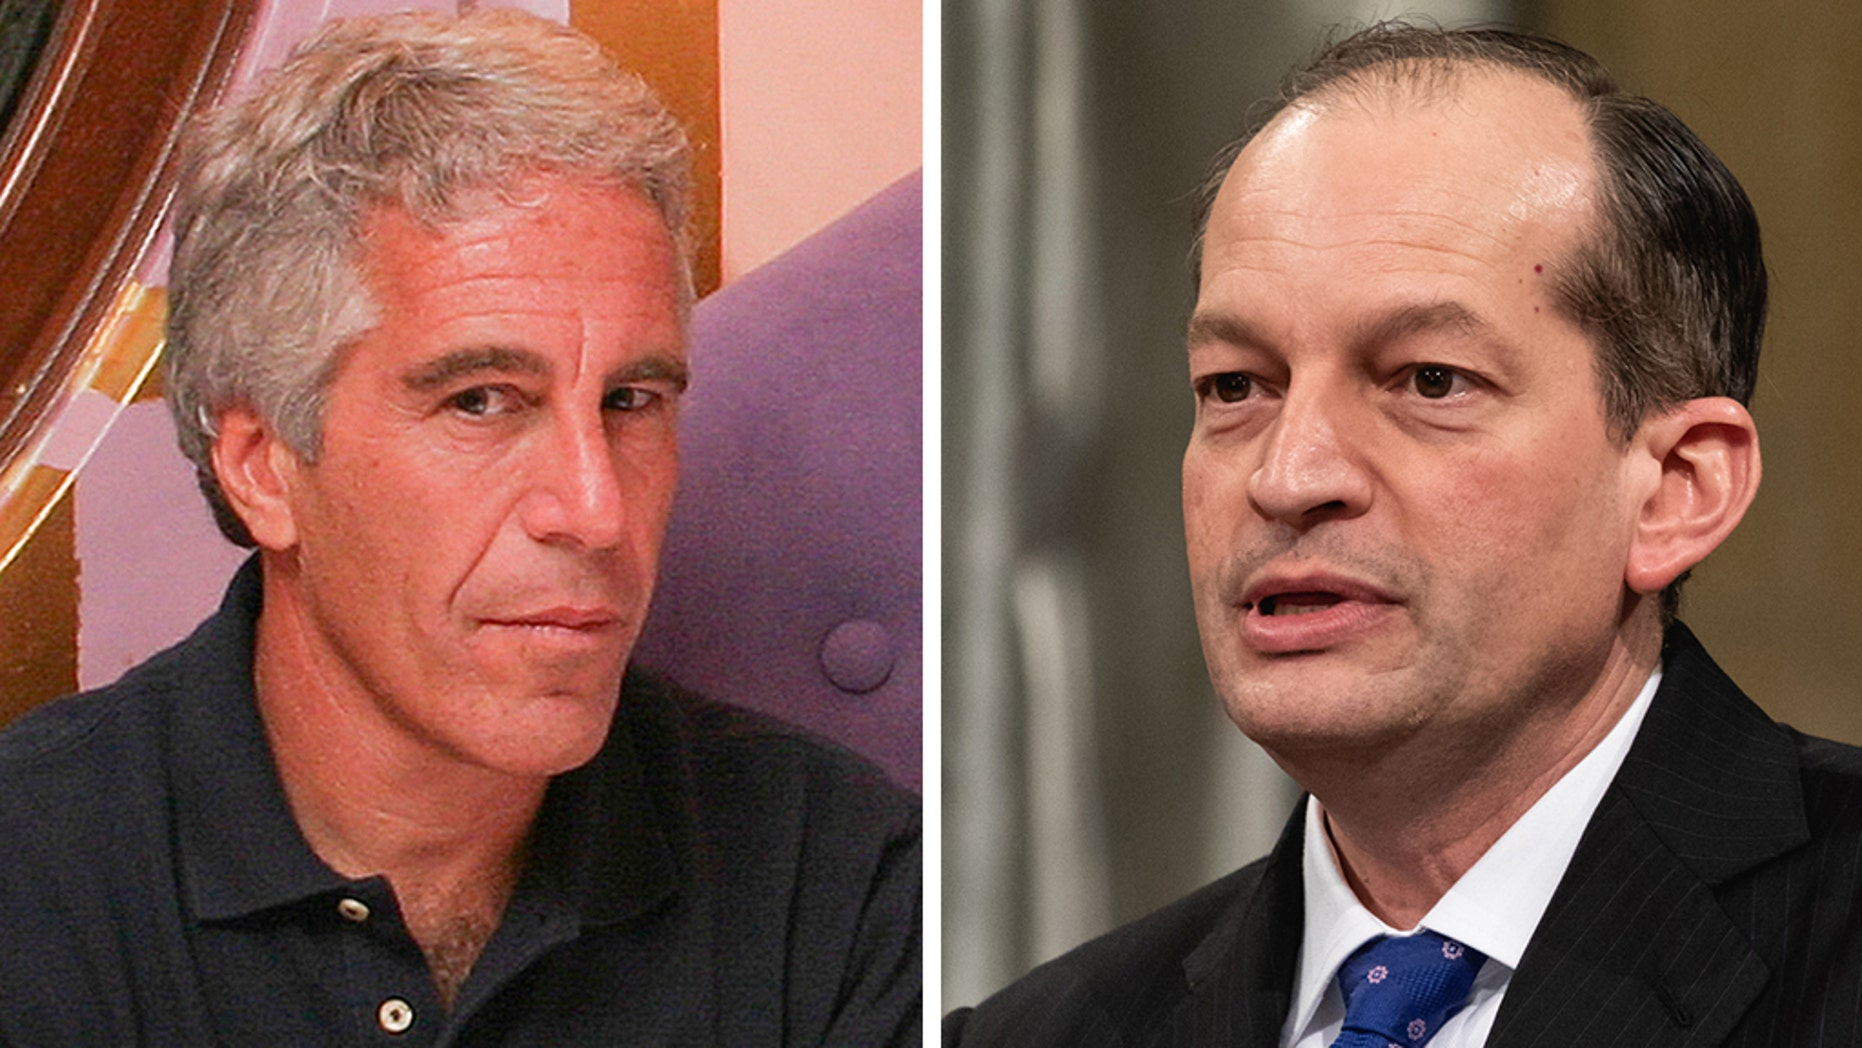 Convicted sex offender Jeffrey Epstein and Labor Secretary Alex Acosta